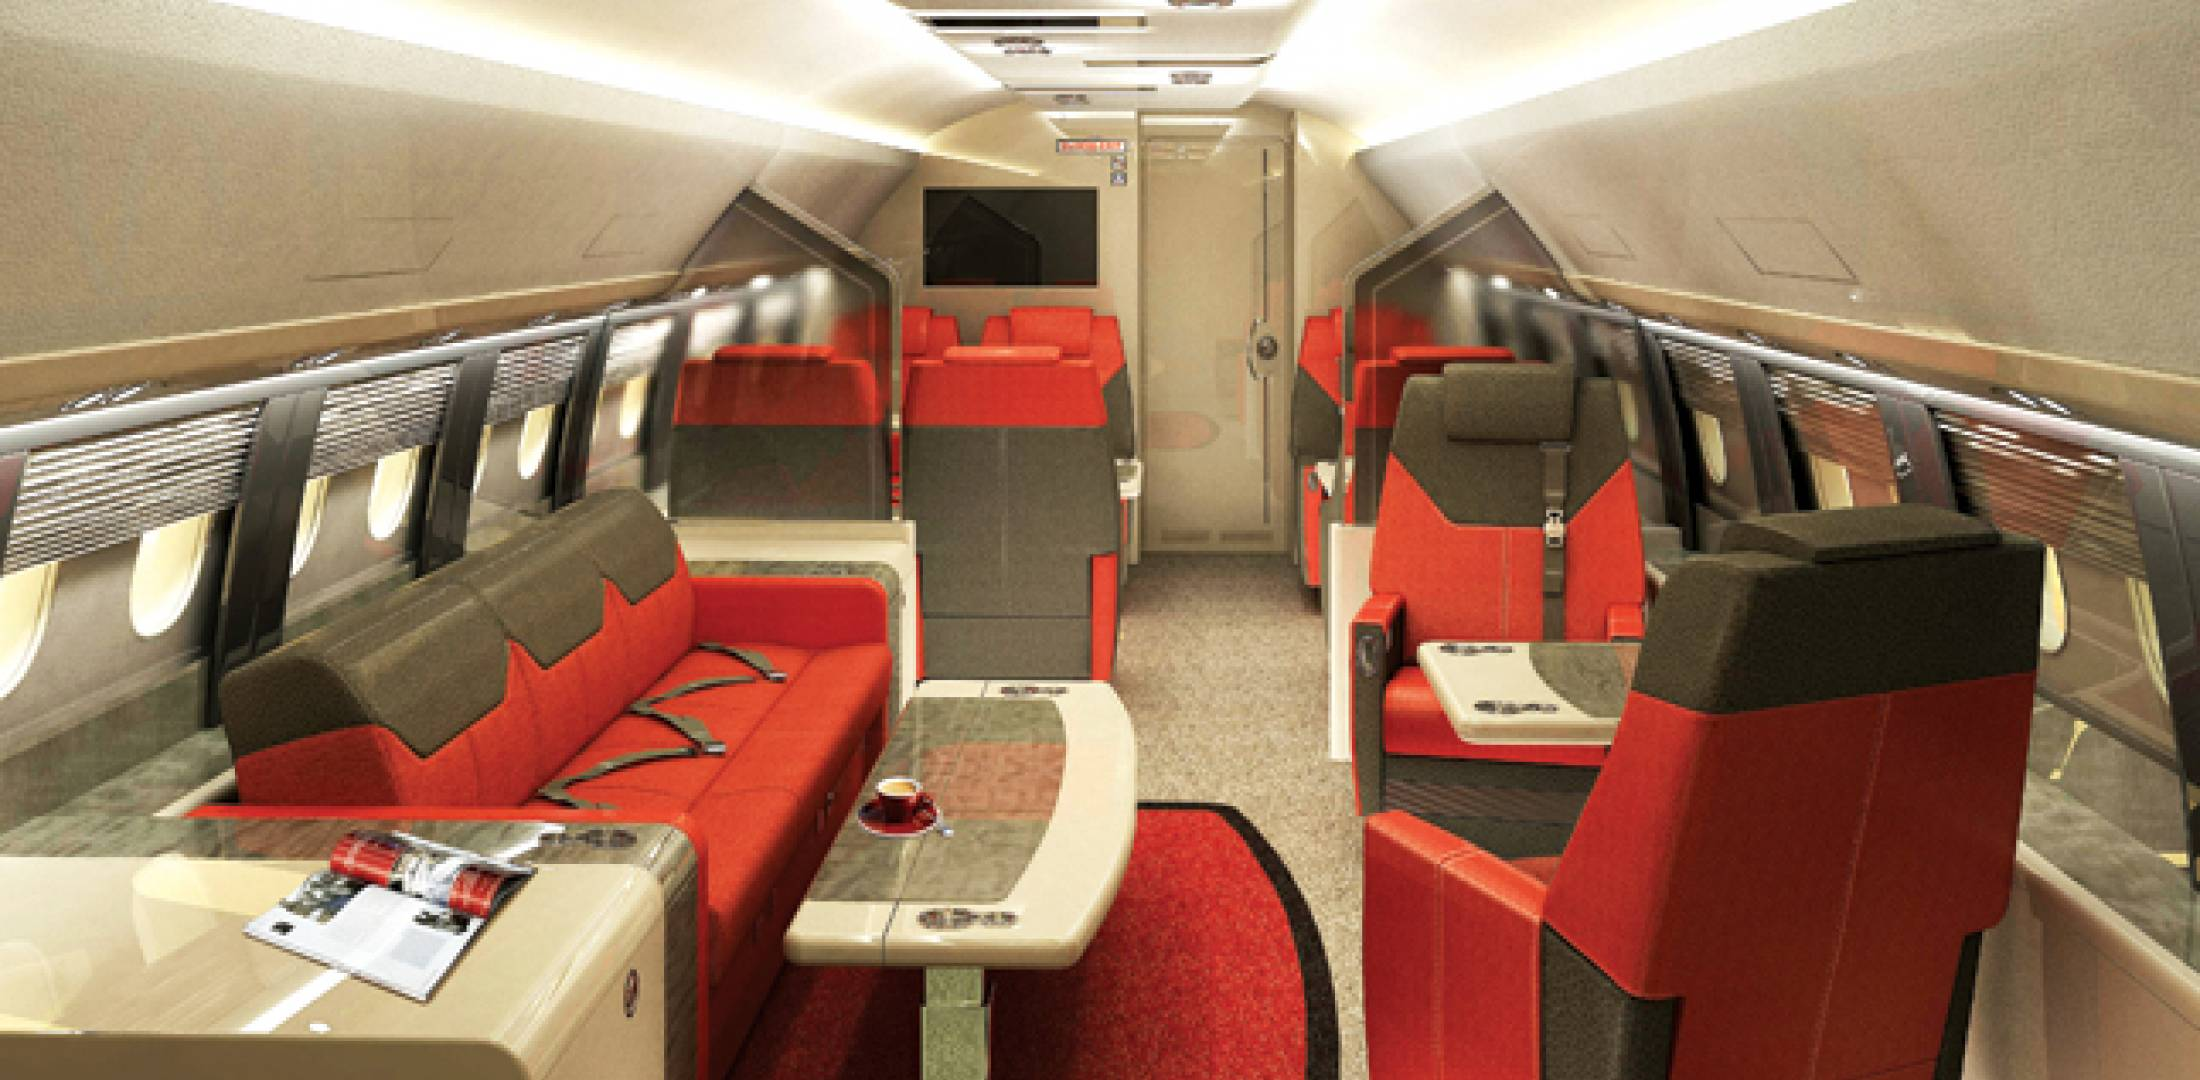 Through their trade association, AKAI, Russian aircraft interior specialists Kvand, Vemina-Aviaprestige and Aerostyle have jointly submitted proposed cabin designs for the new Sukhoi Business Jet being developed from the Russian airframer's Superjet SSJ100 airliner.